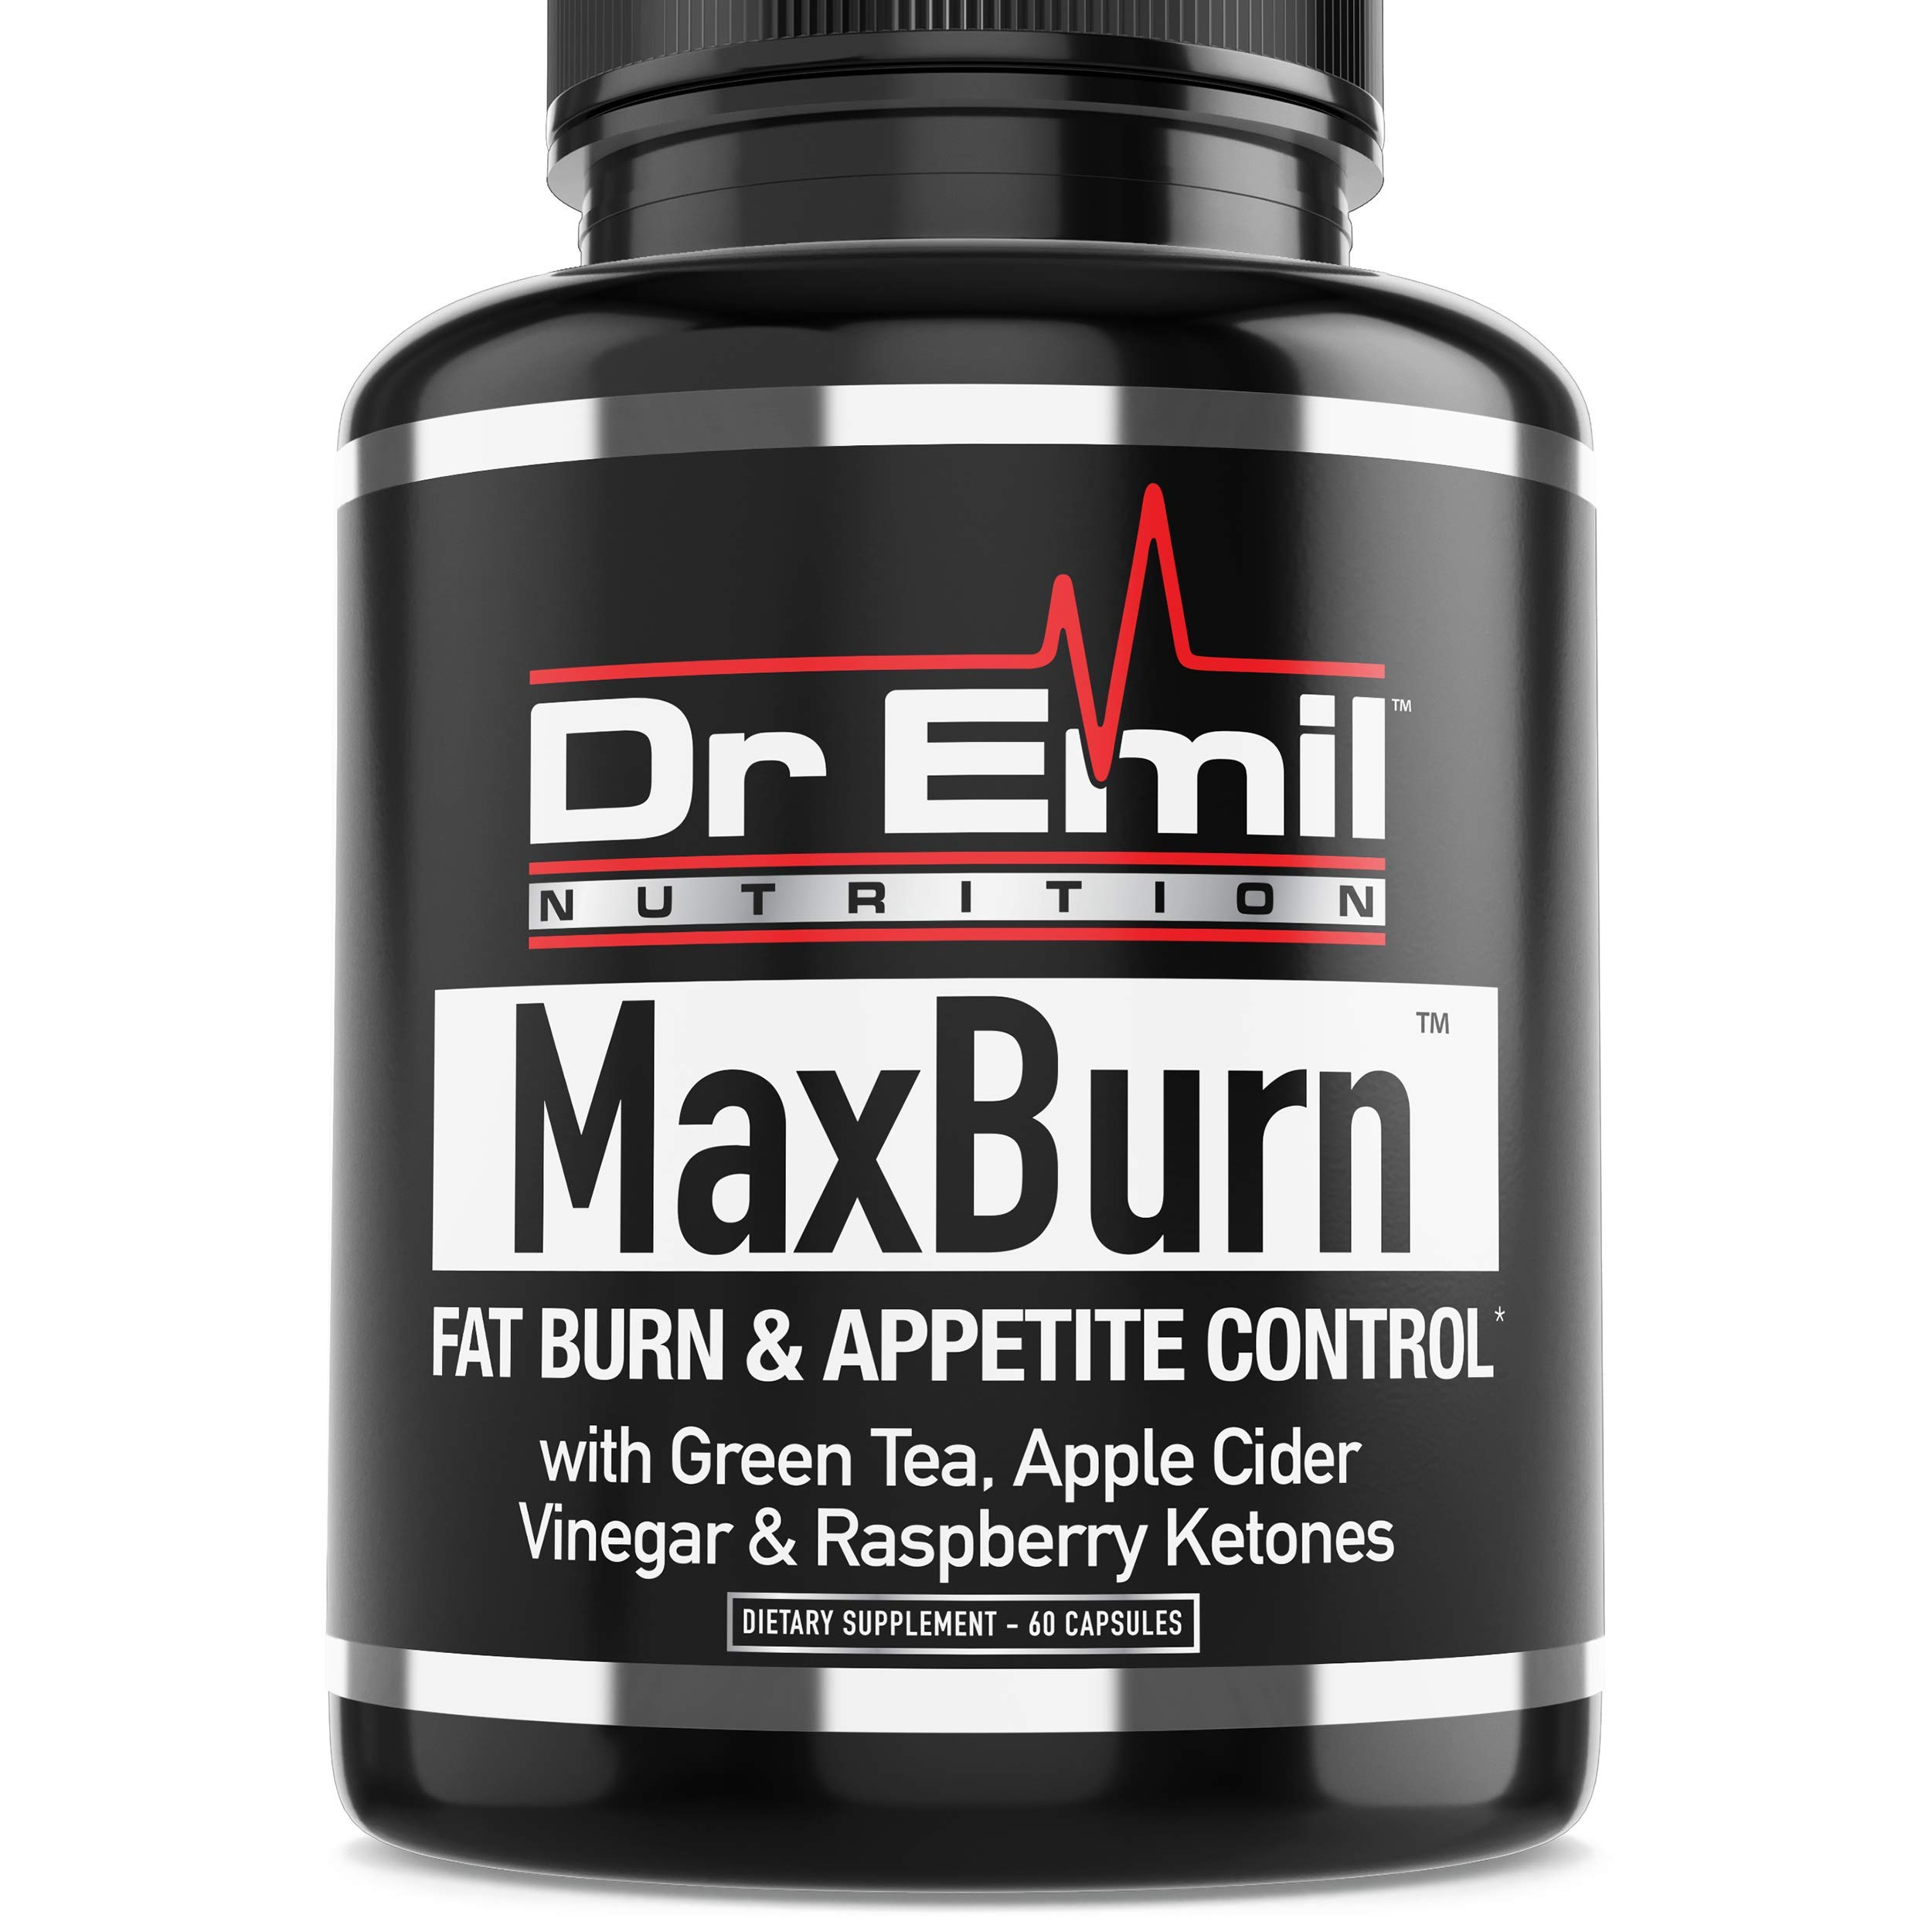 Dr. Emil - Thermogenic Fat Burner For Men and Women - Weight Loss Pills, Metabolism Booster and Appetite Suppressant (60 vegan diet pills) by DR EMIL NUTRITION